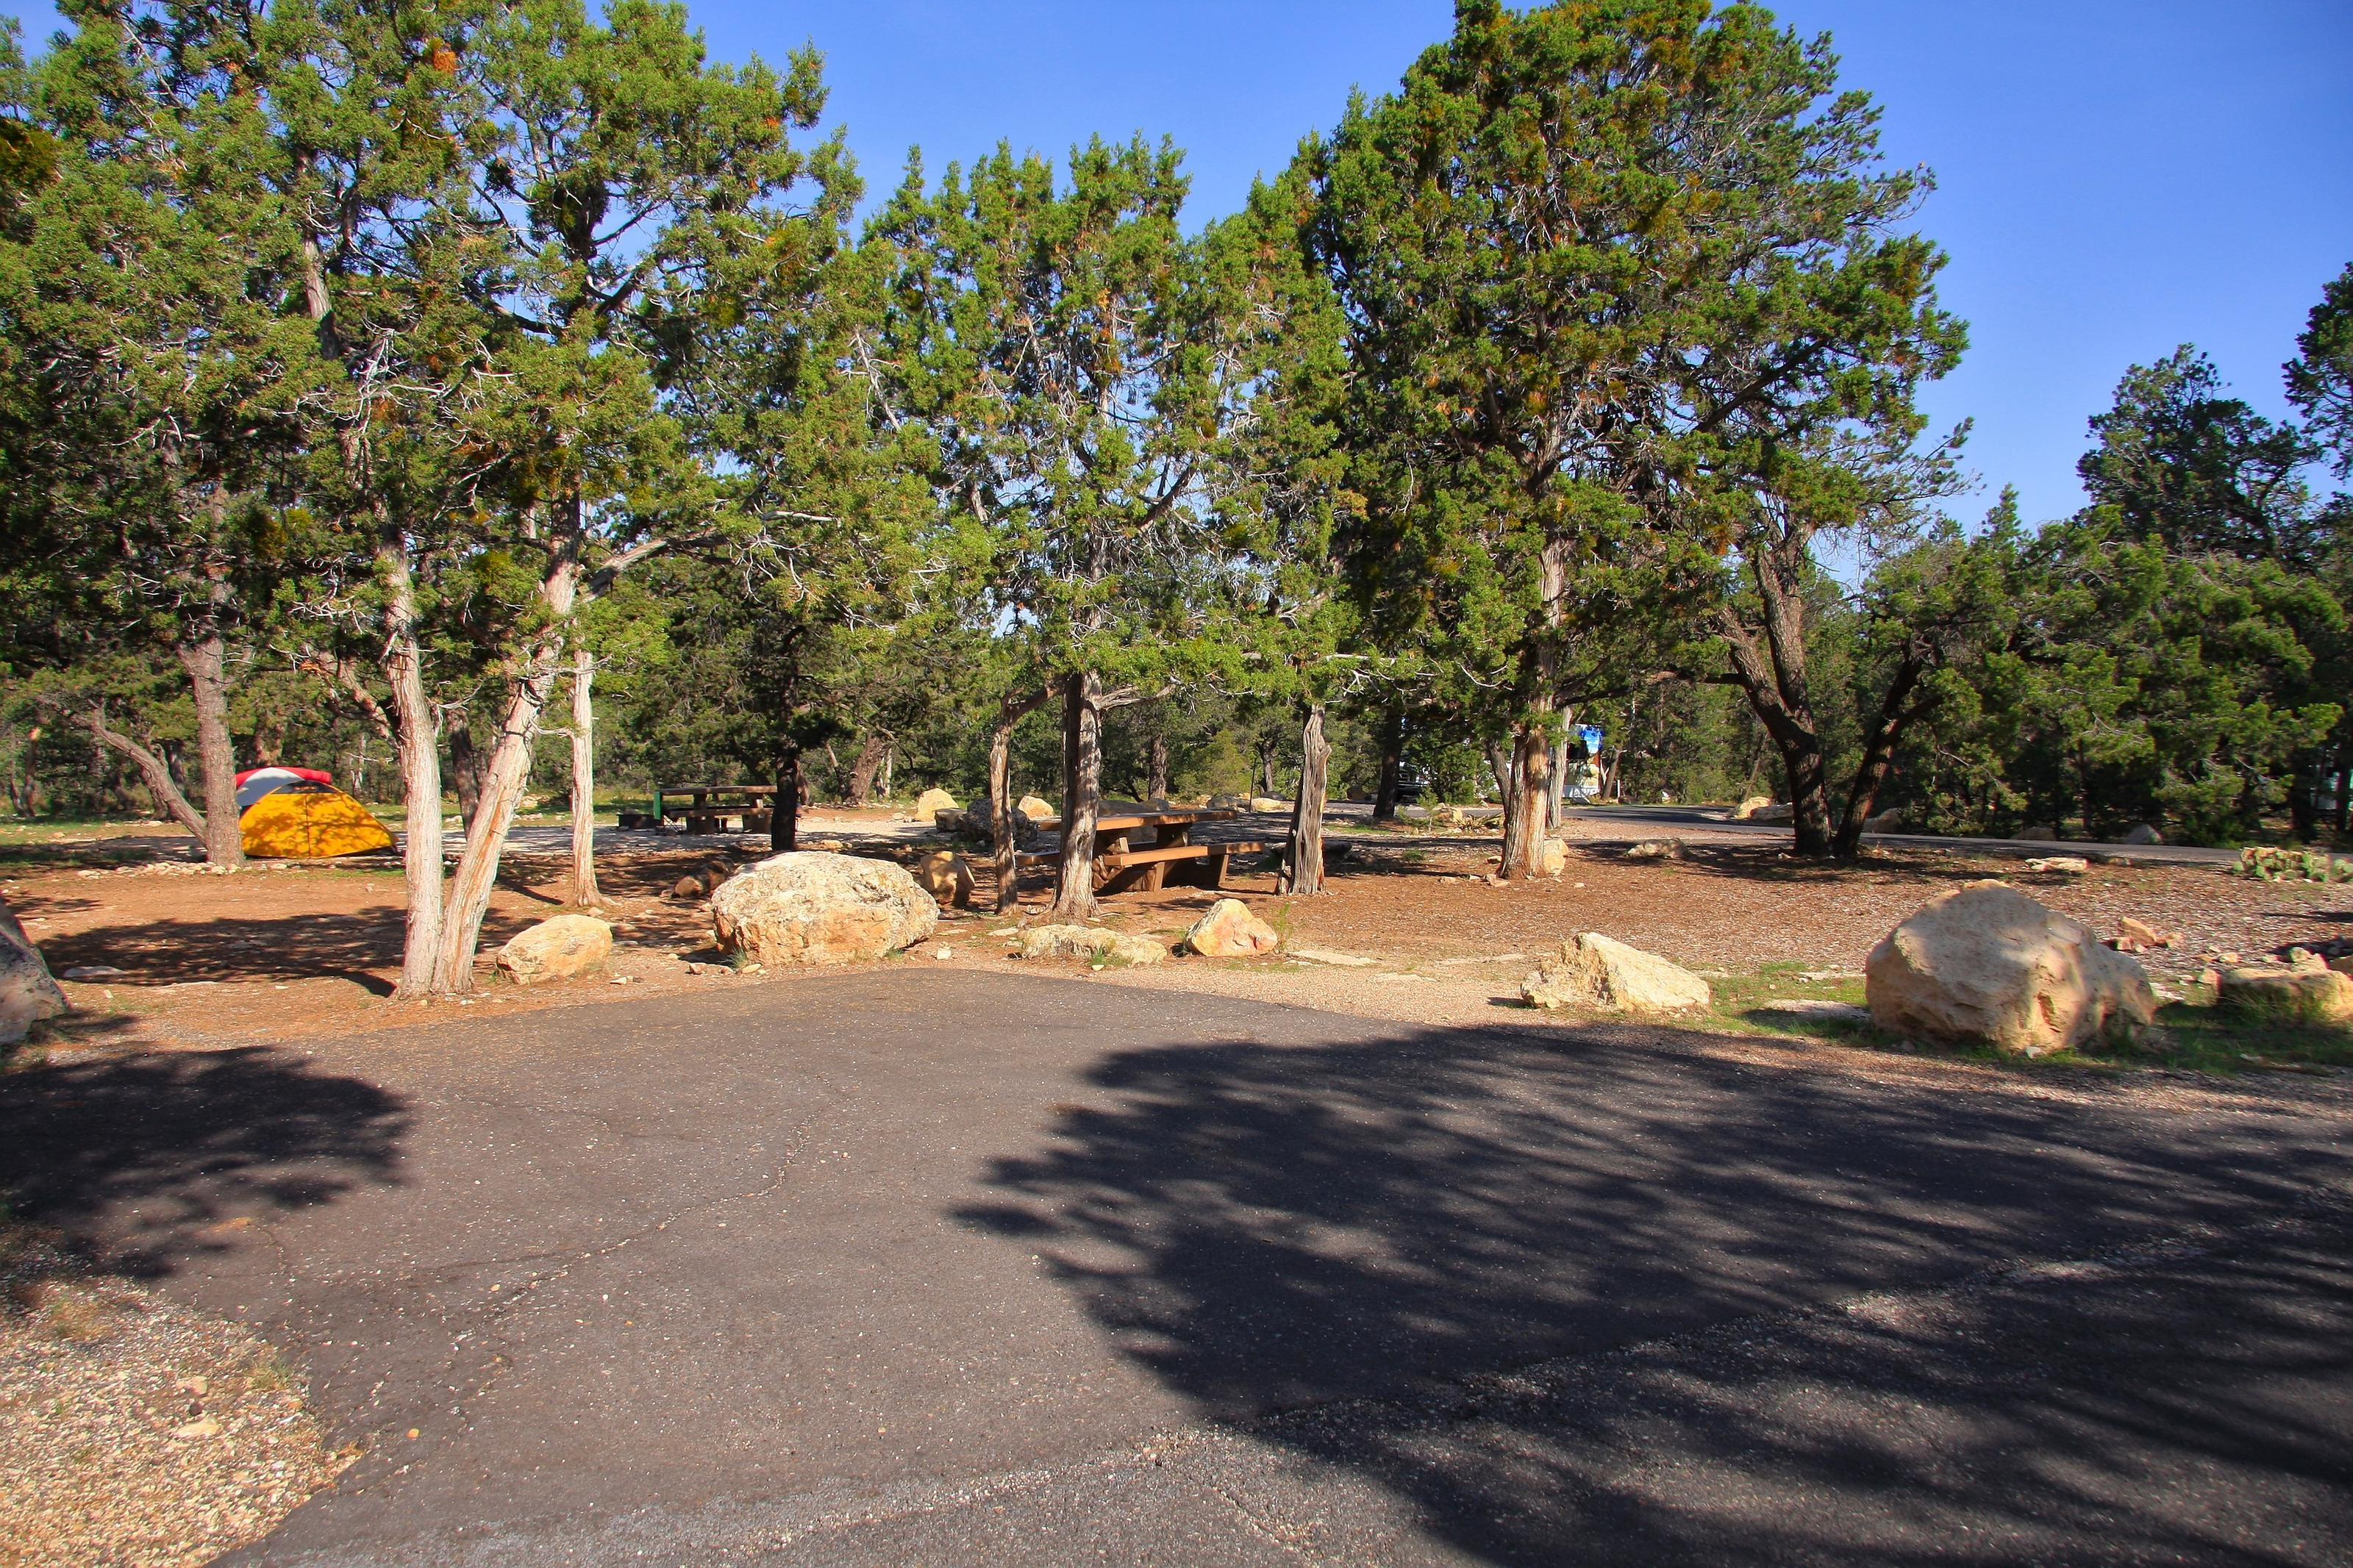 Picnic table, fire pit, and parking spot, Mather CampgroundPicnic table, fire pit, and parking spot for Juniper Loop 170, Mather Campground